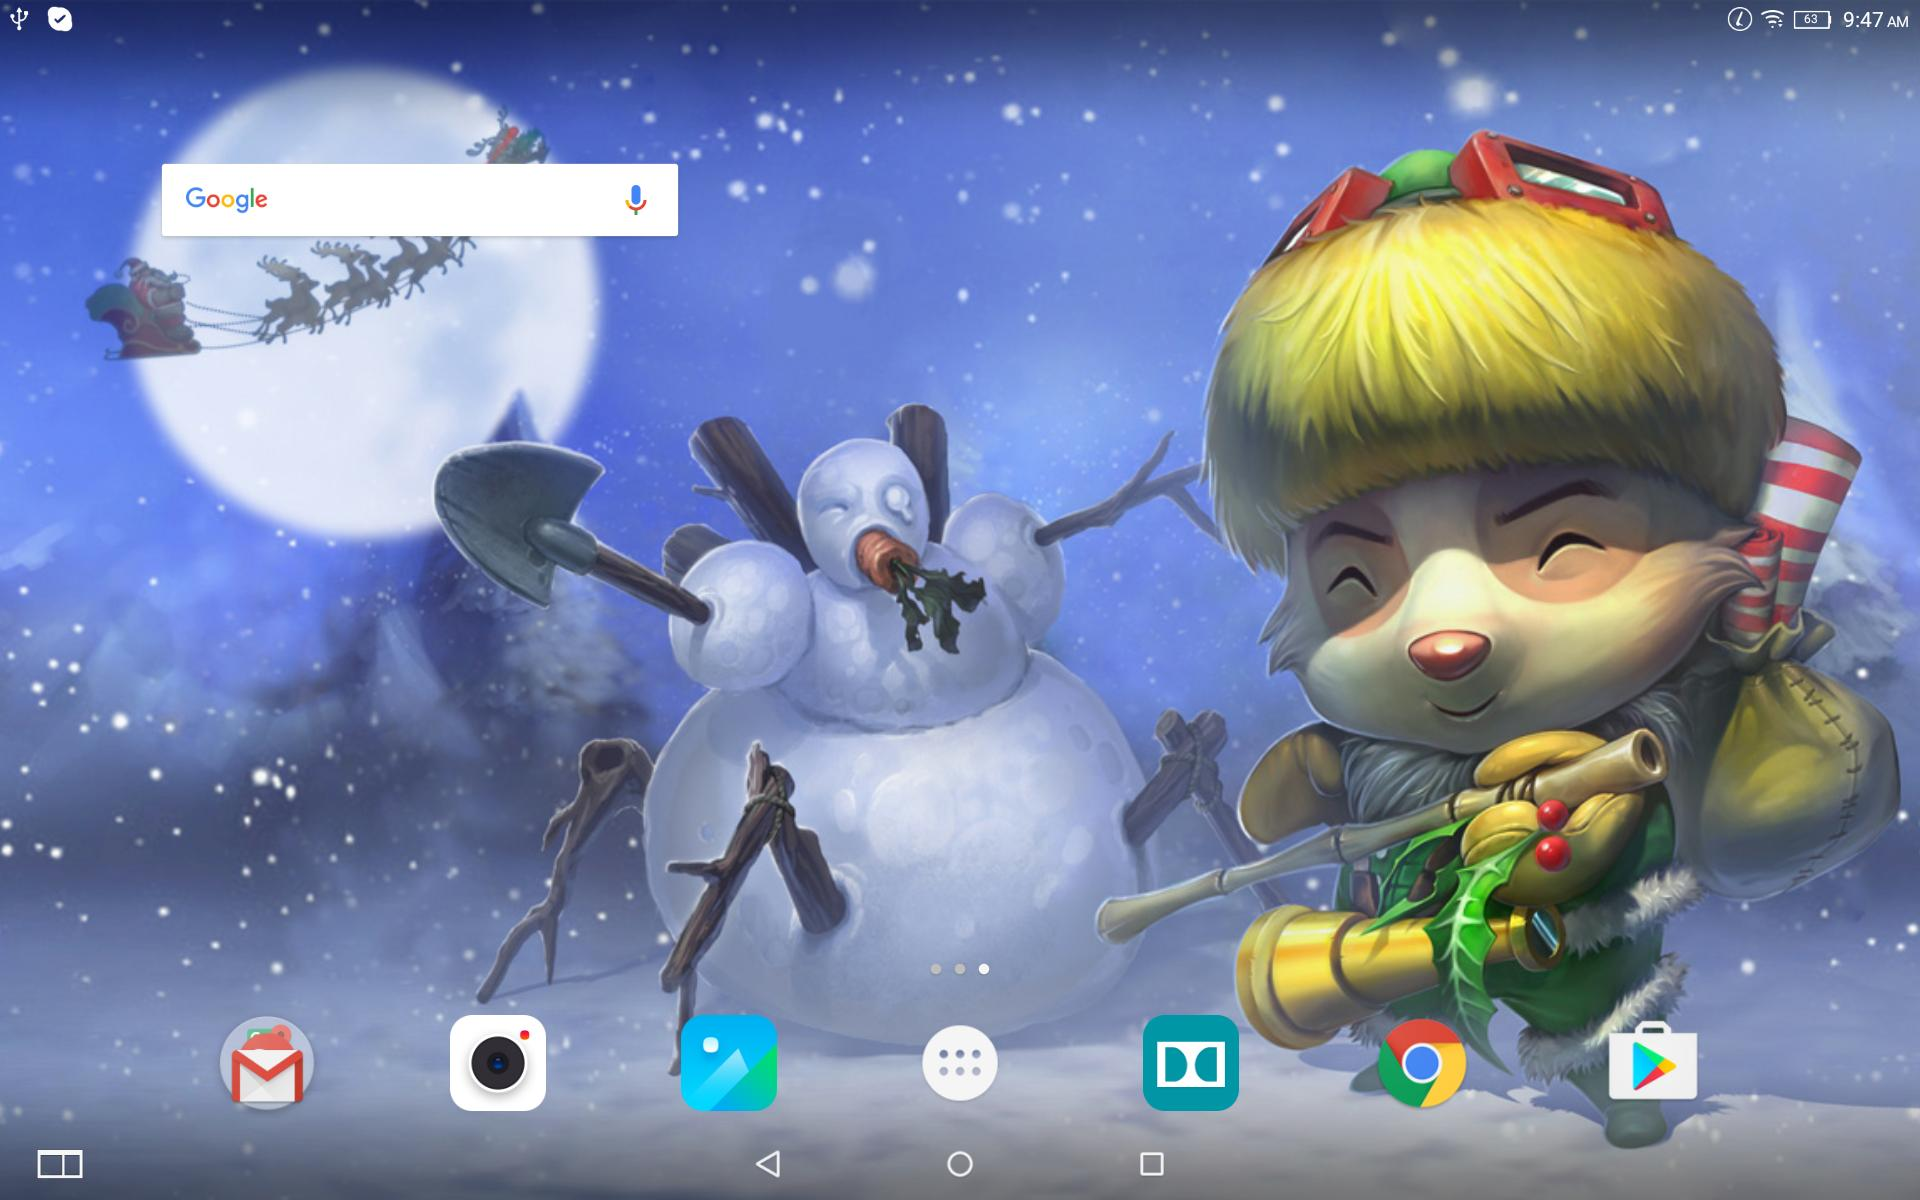 Teemo Hd Live Wallpapers For Android Apk Download